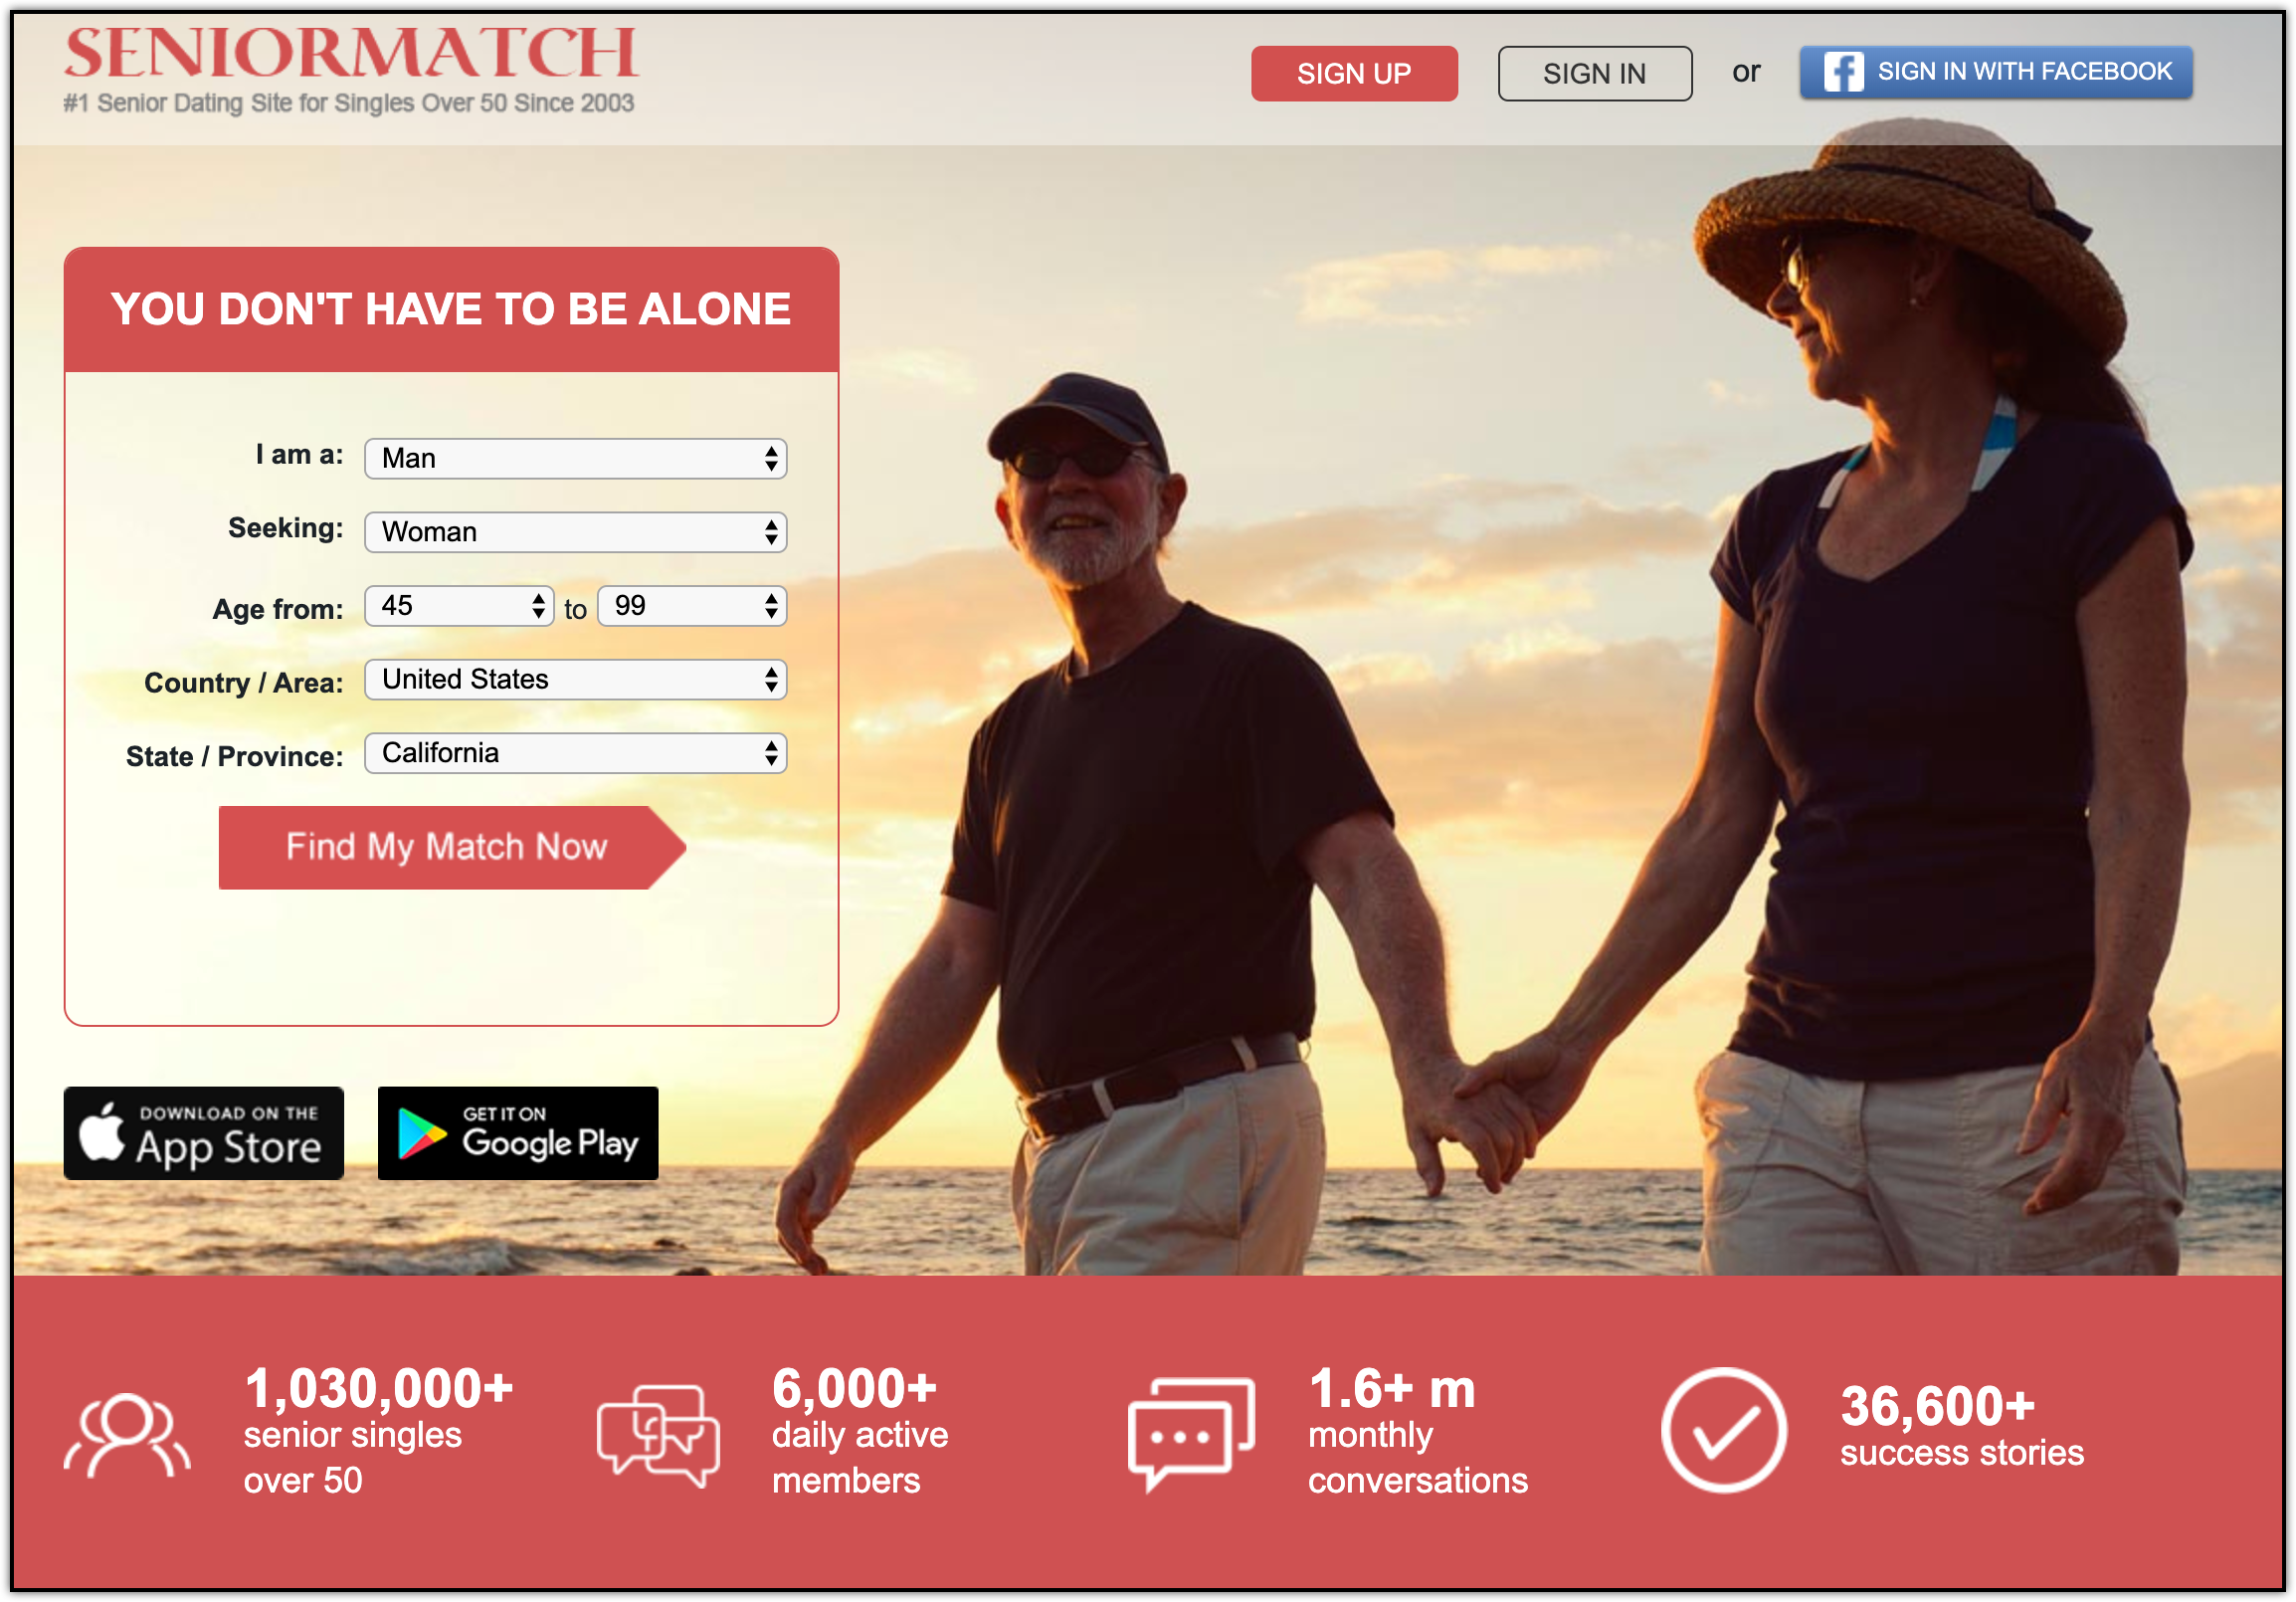 A roundup of the best senior dating sites